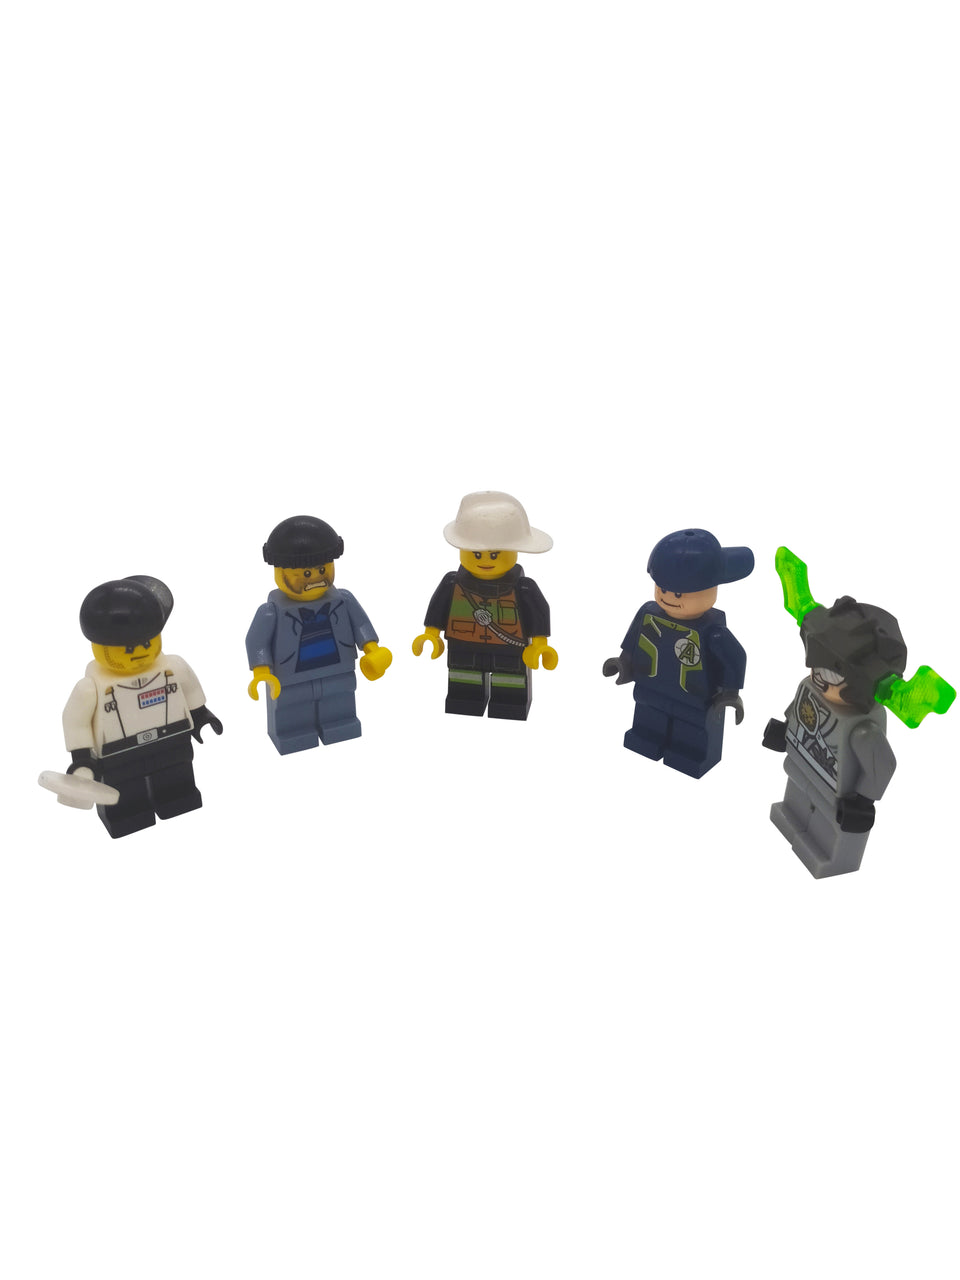 5 lot of Lego special  Minifigures #1 1